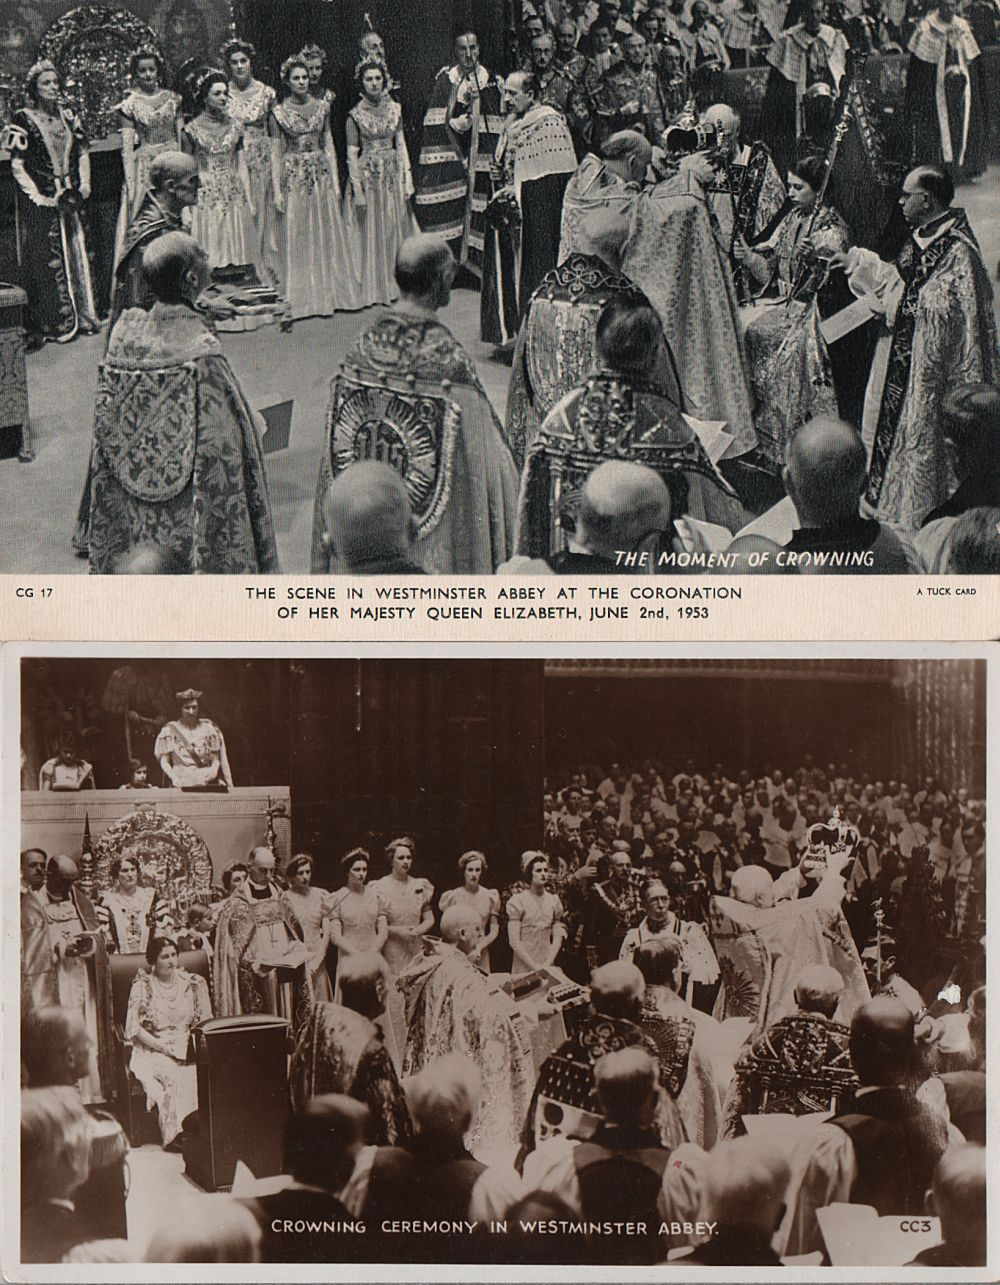 cards showing crowning ceremonies of Elizabeth II and George VI